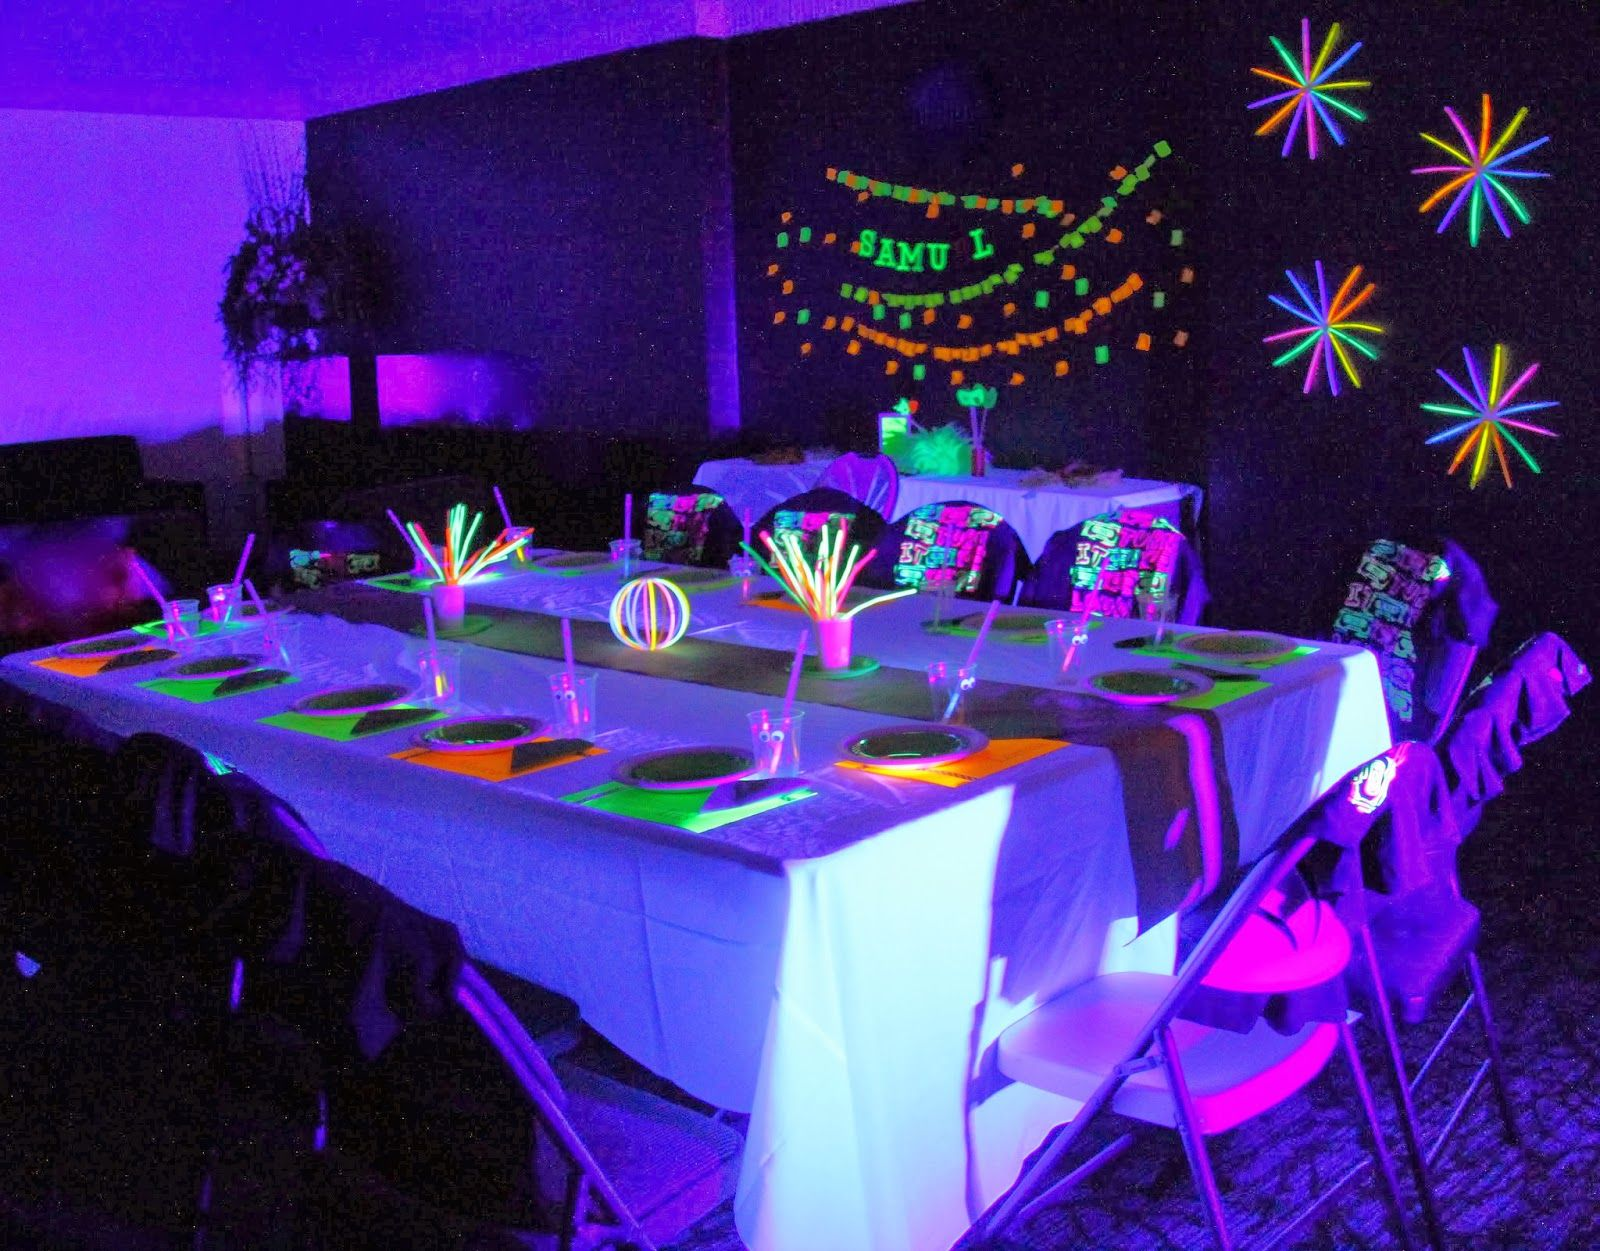 Glow Party Activities If You Want To Learn How To Make